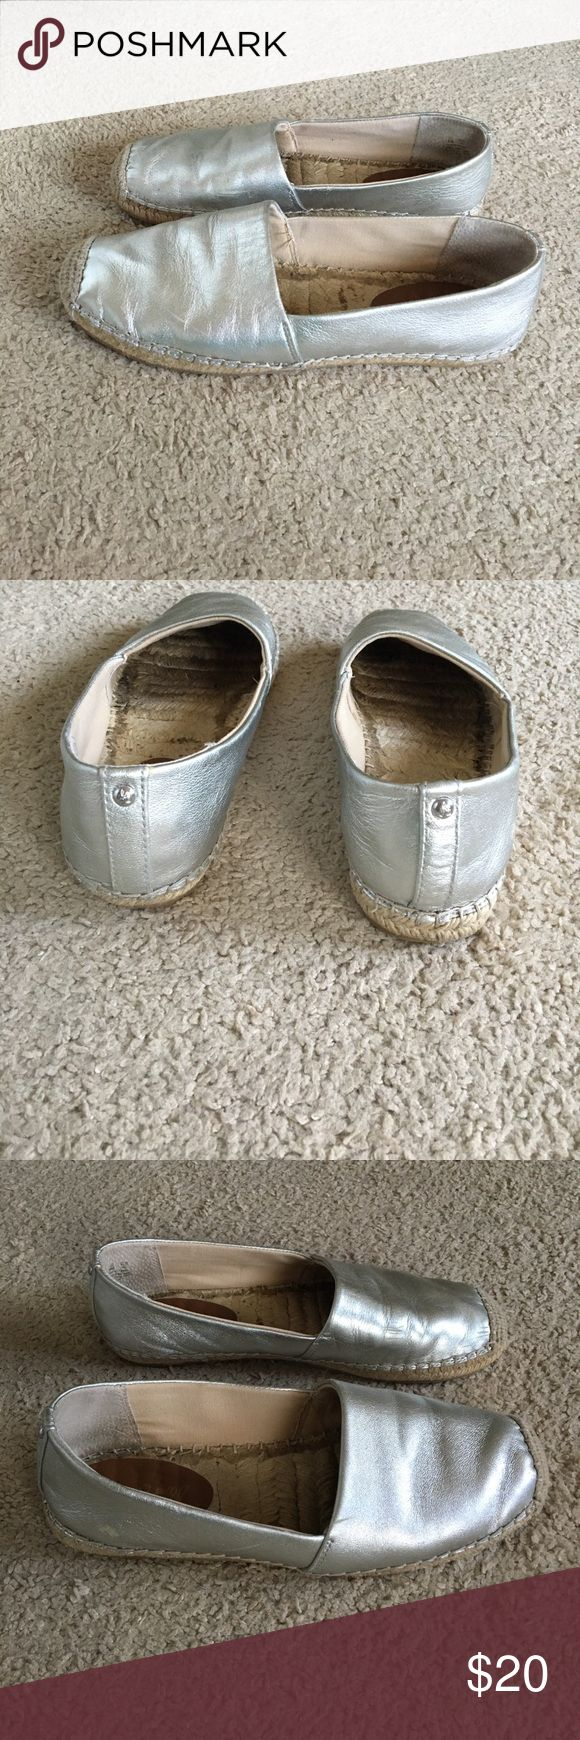 Sam Edelman silver espadrilles Gently worn in good condition. Size 9.5. Shows slight wear on outside. Some very minor scuffs on silver. No box. Priced to sell! Sam Edelman Shoes Espadrilles